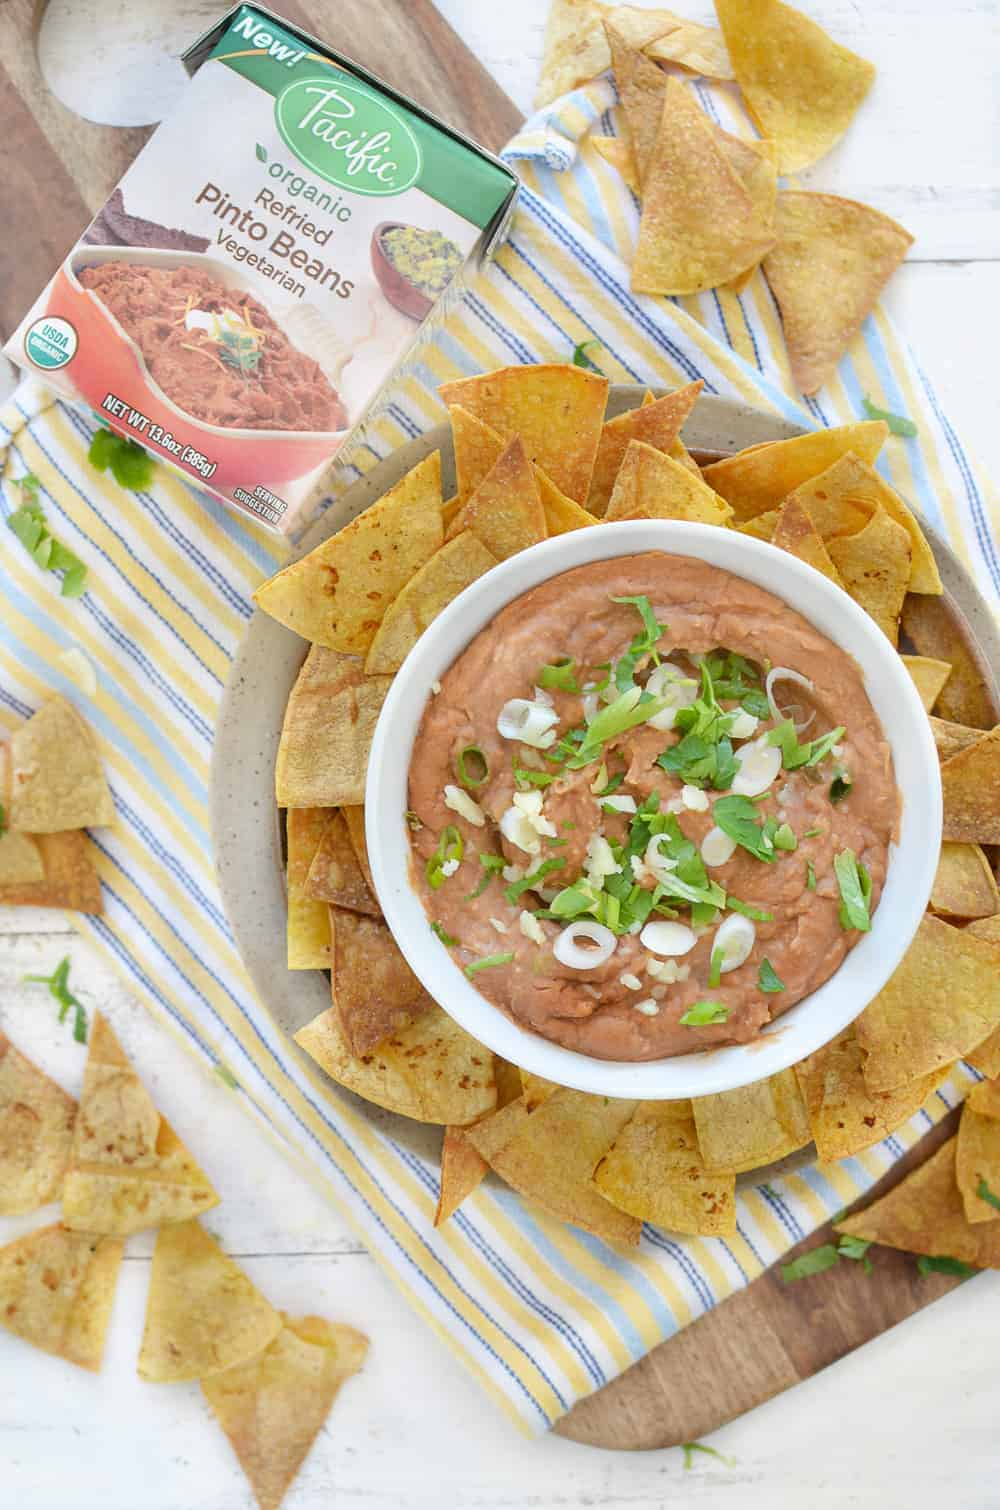 15 minute Spicy Bean Dip with Homemade Tortilla Chips! A must-make for tailgates, football games, and parties! Save this one when you need a fast, healthy appetizer option. #vegetarian #glutenfree   www.delishknowledge.com